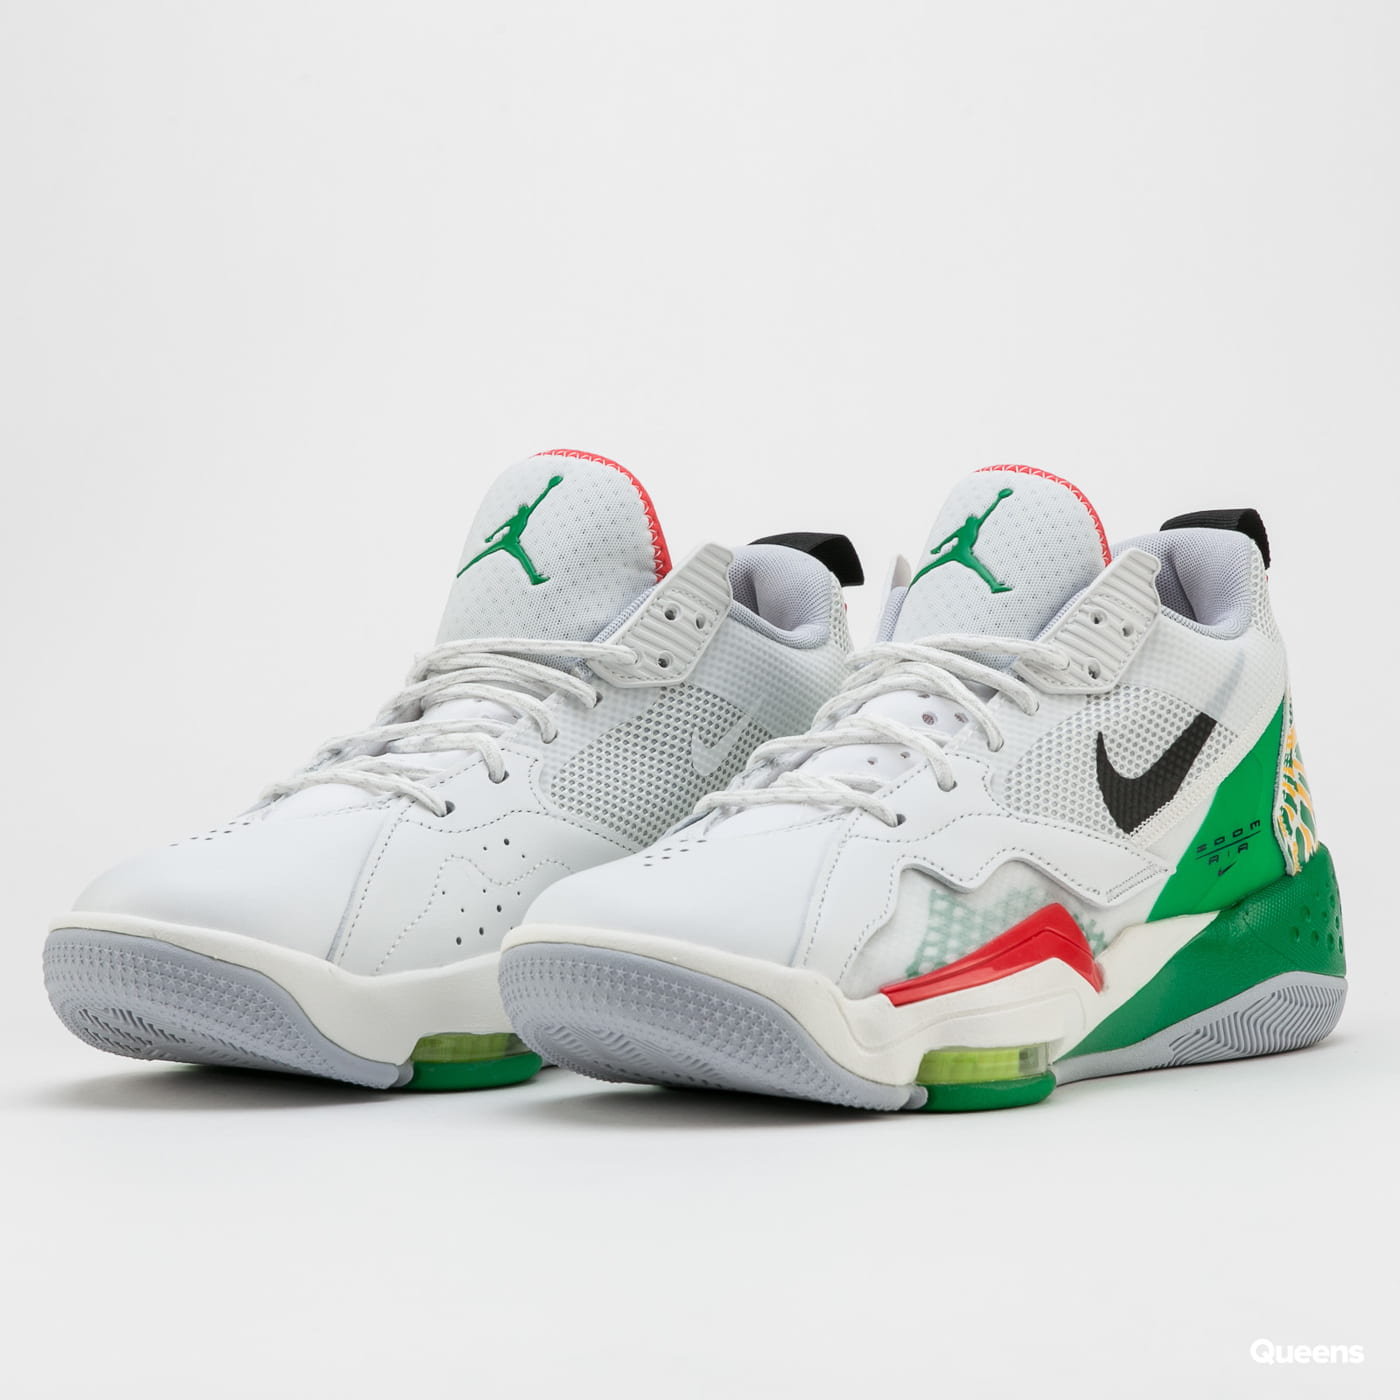 Jordan Zoom '92 summit white / black - lucky green